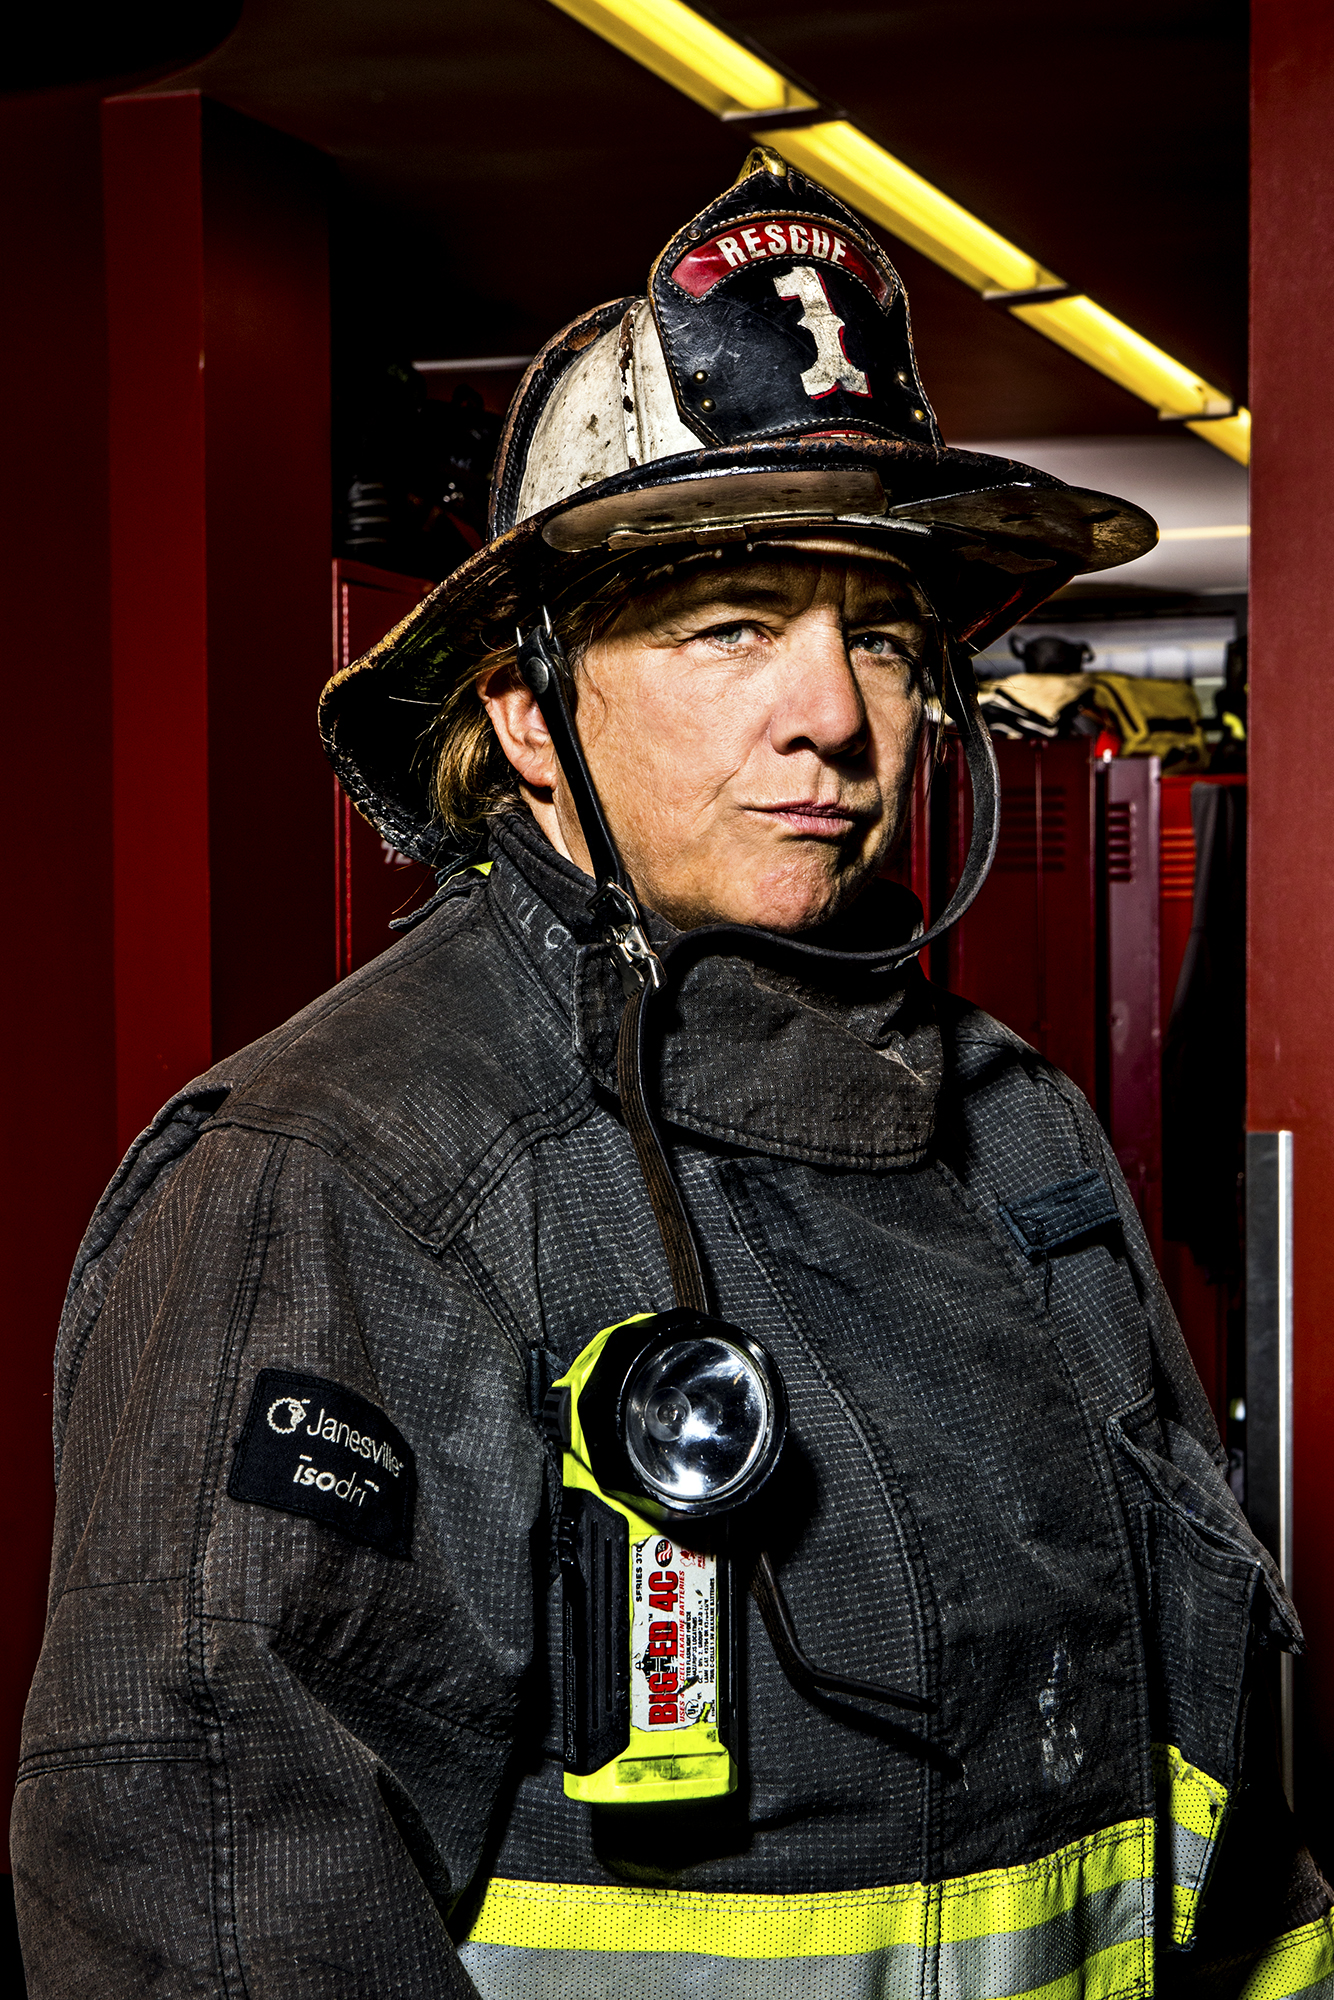 Sarah Coe - Rescue Squad 1, 30 years.